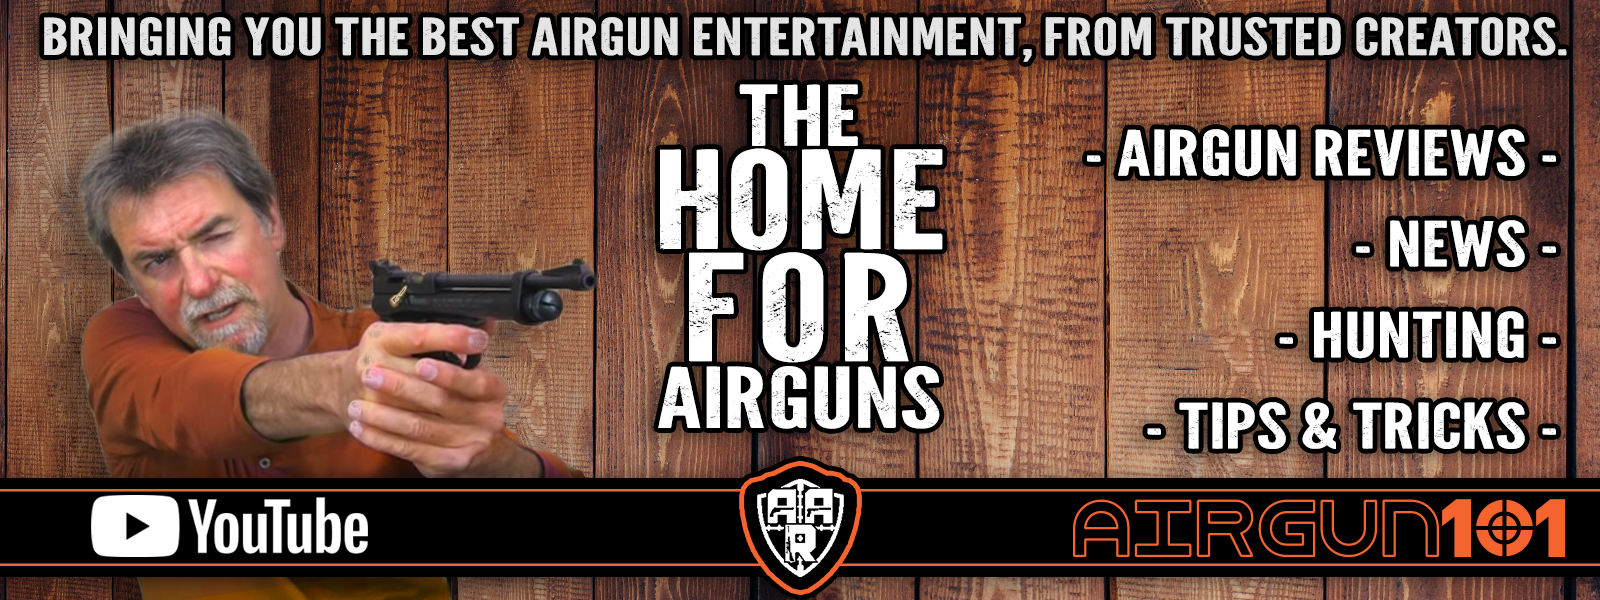 Our welcome relationship with independent reviewer, Andy's Airgun Review. Head over to his channel to find more